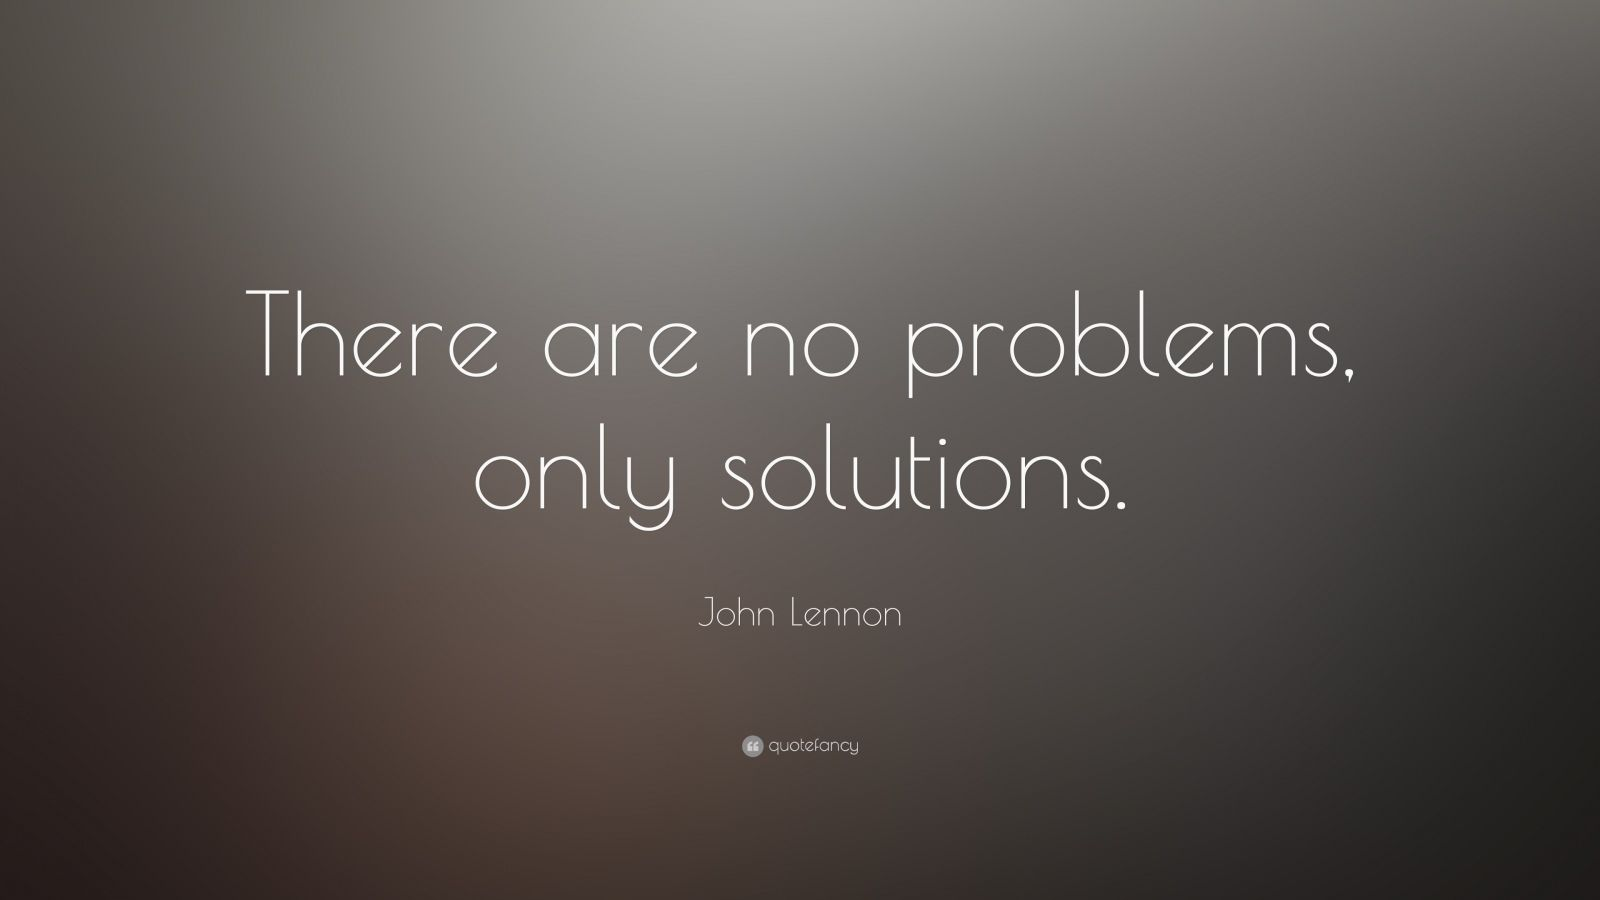 Steve Jobs Motivational Quotes Wallpaper John Lennon Quote There Are No Problems Only Solutions